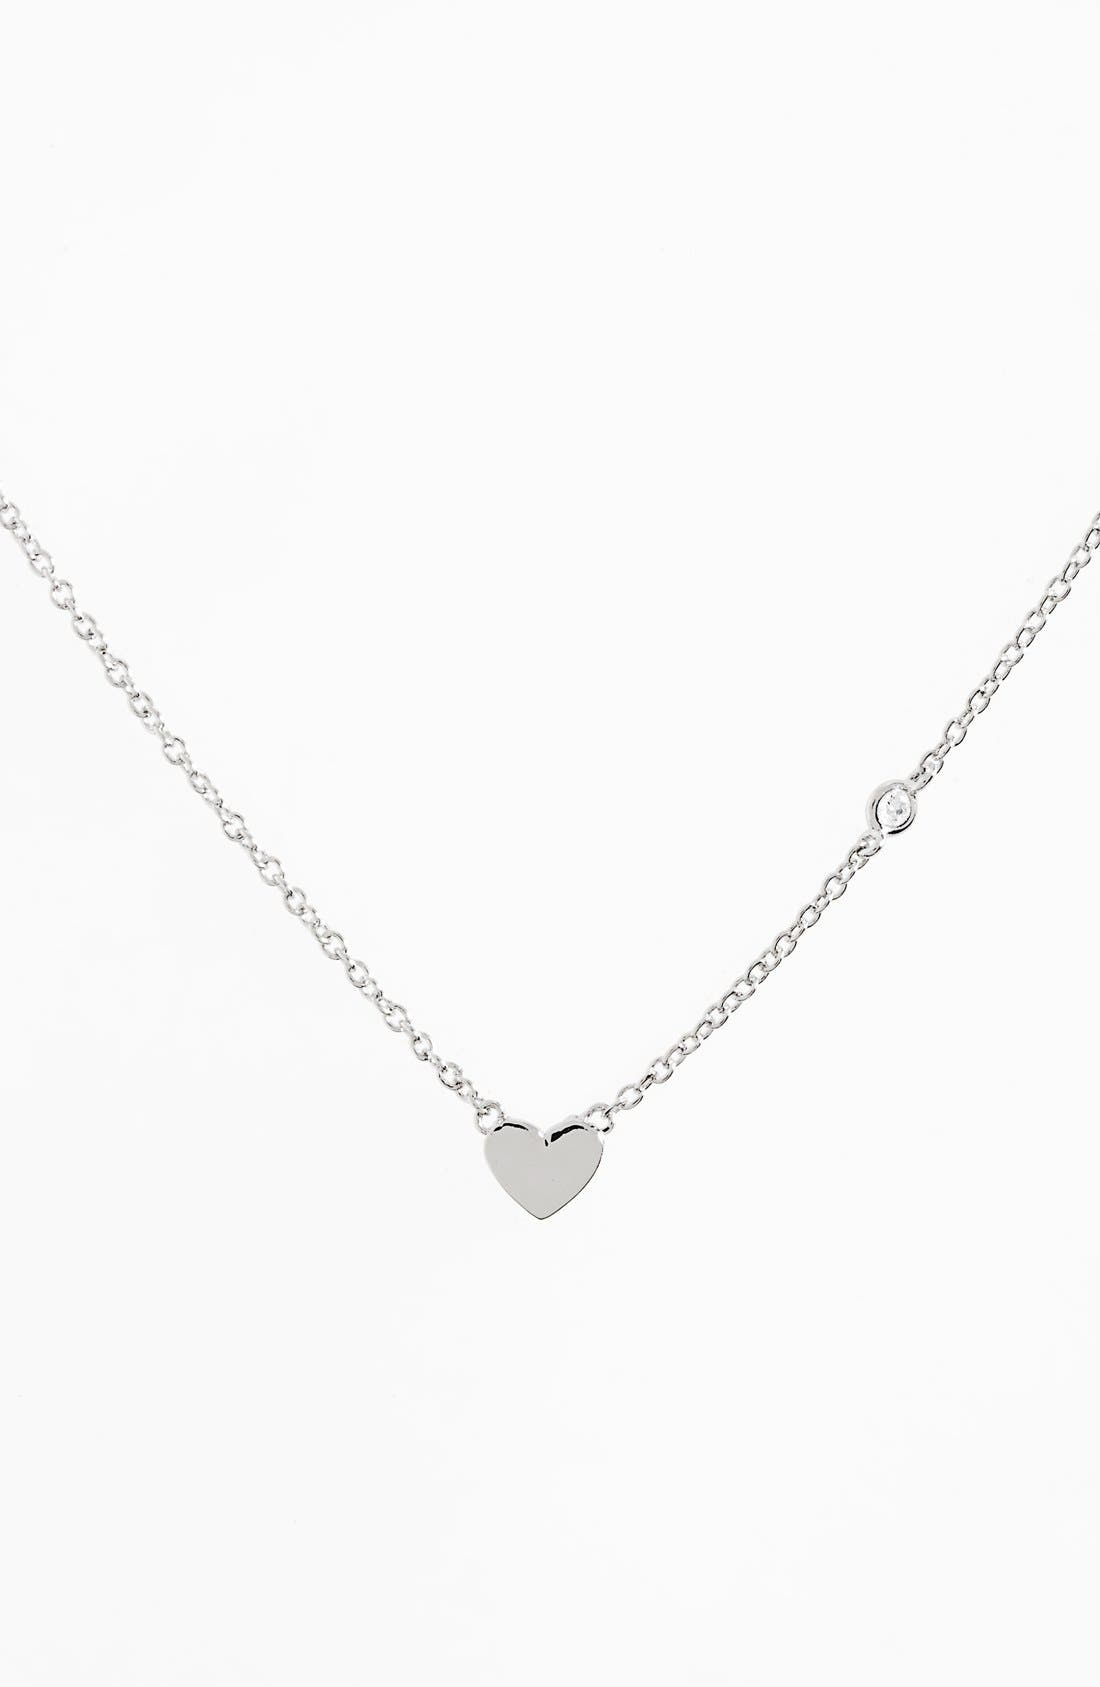 Shy by SE Heart Necklace,                             Main thumbnail 1, color,                             040